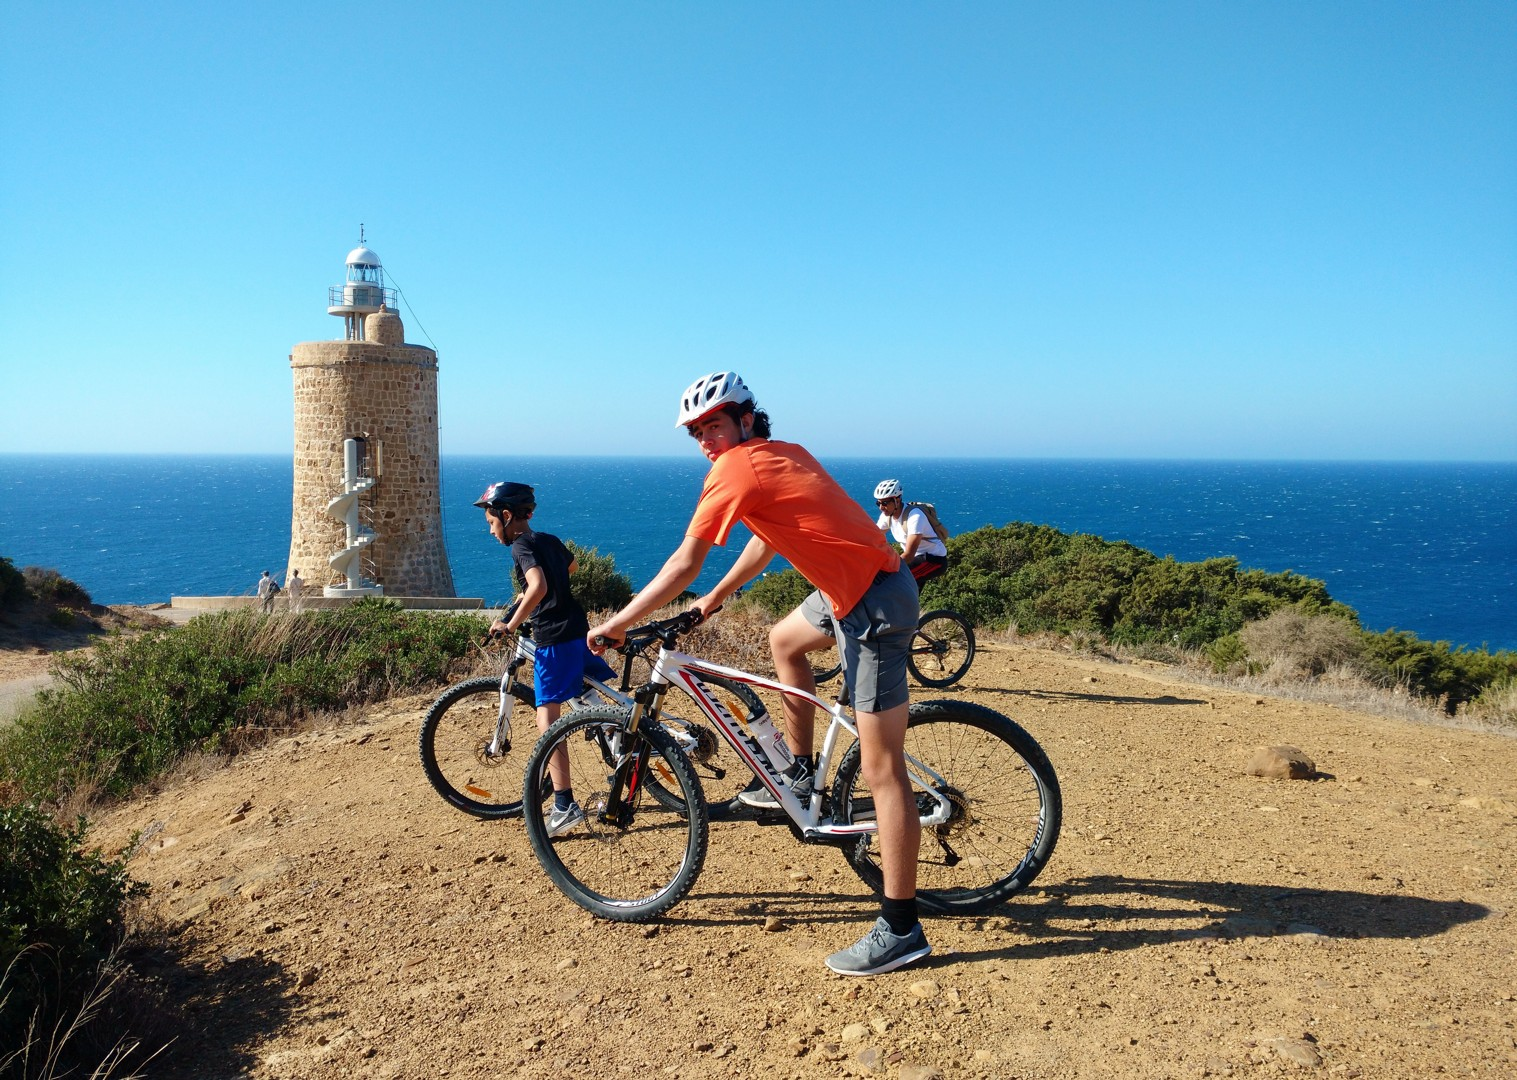 spanish-family-holiday-all-the-family-self-guided.jpg - Southern Spain - Coastal Adventurer - Self-Guided Family Cycling Holiday - Family Cycling